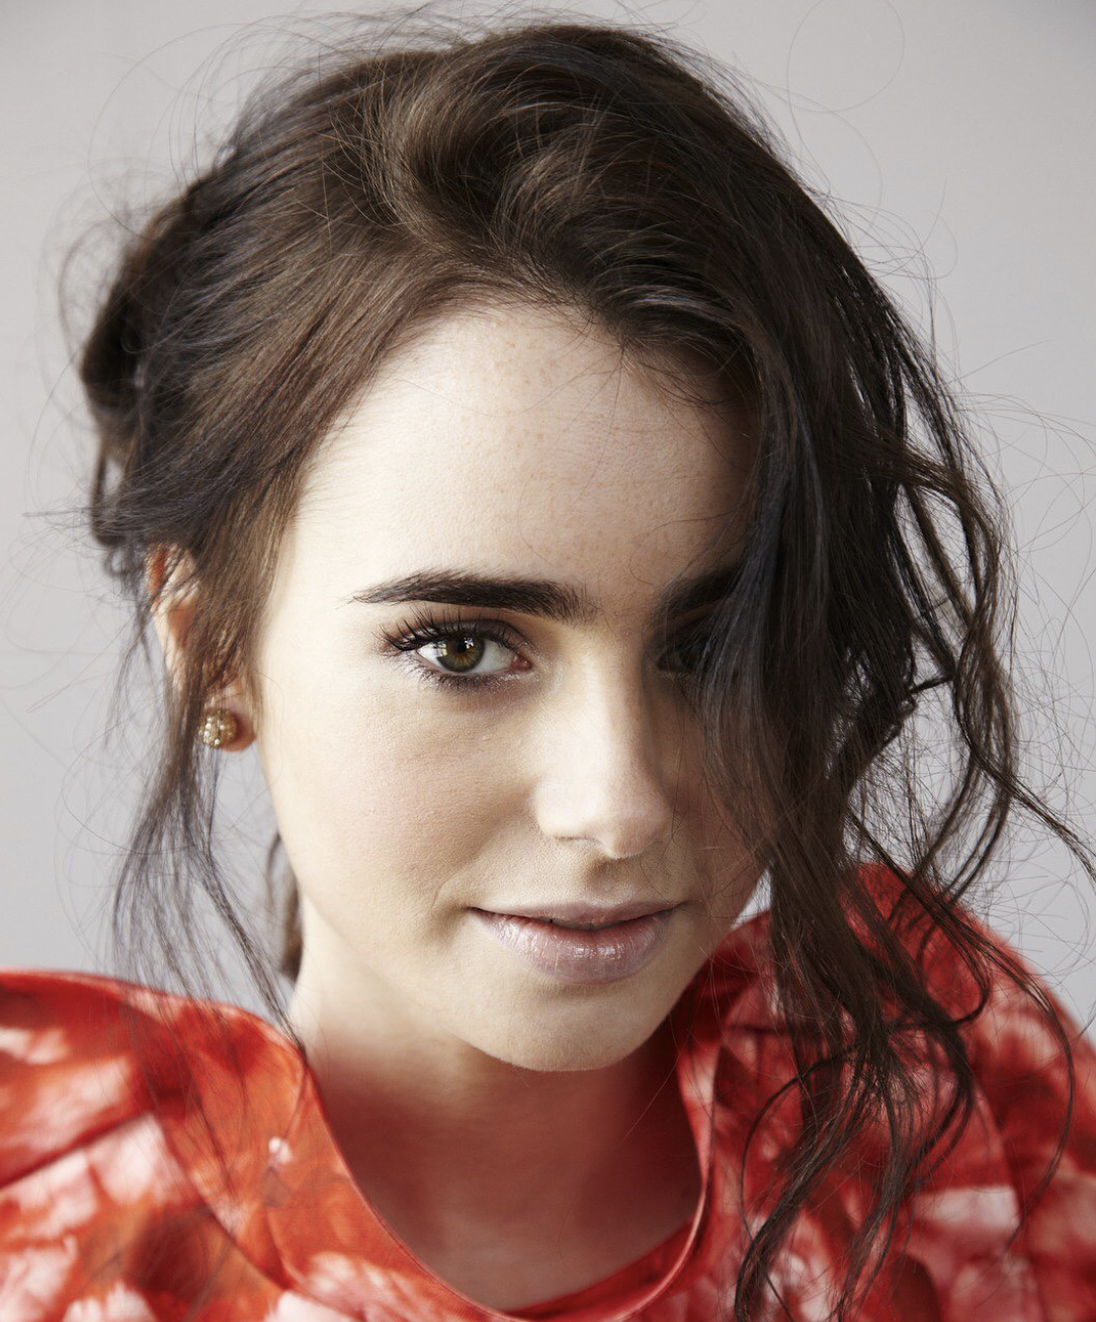 02 Lily 2012 Lily, Lily collins, Lilly collins